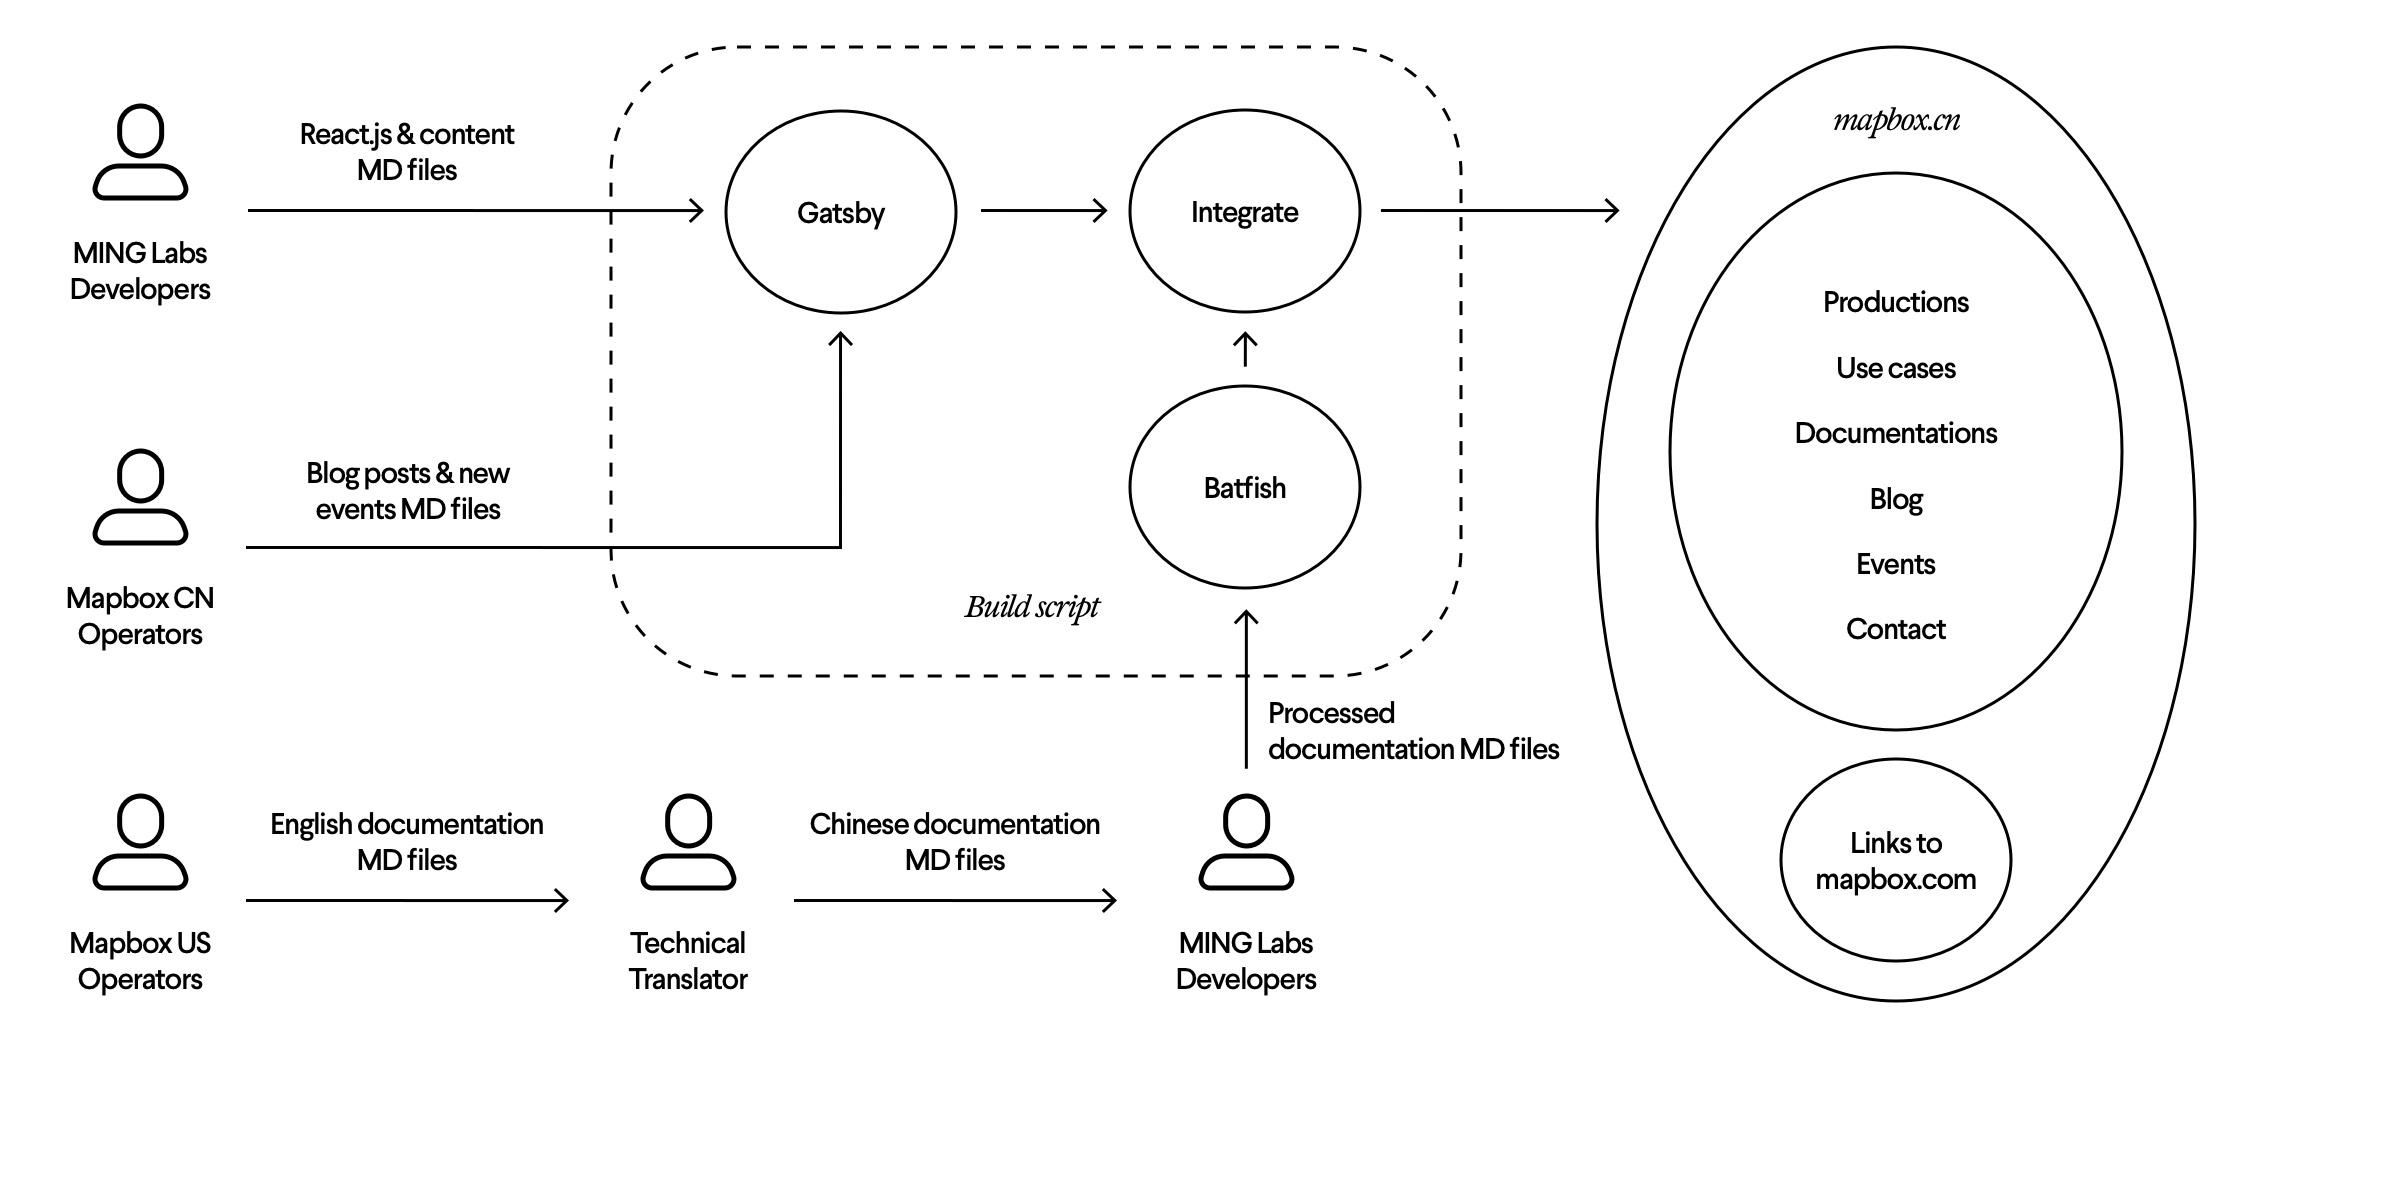 Diagram showing workflow and setup of Mapbox project, including circles, arrows and people icons